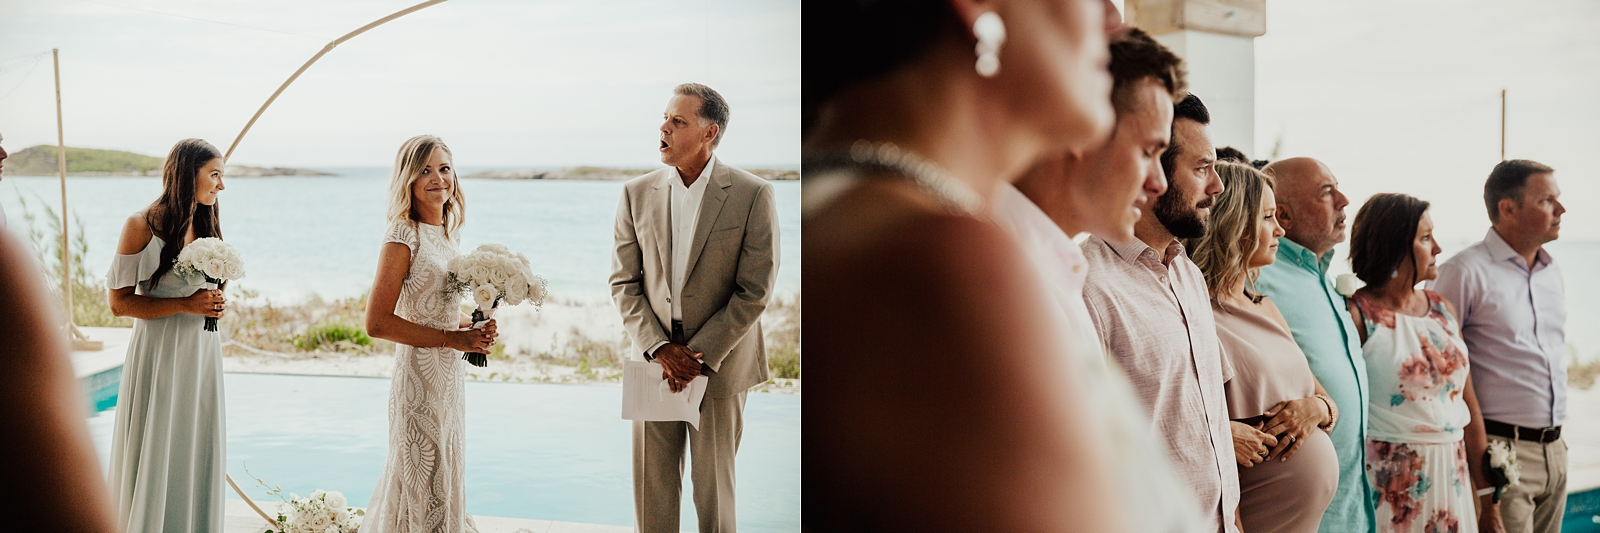 Jenni & Andrew Intimate Beach Destination Wedding in Little Exuma, Bahamas_0505.jpg